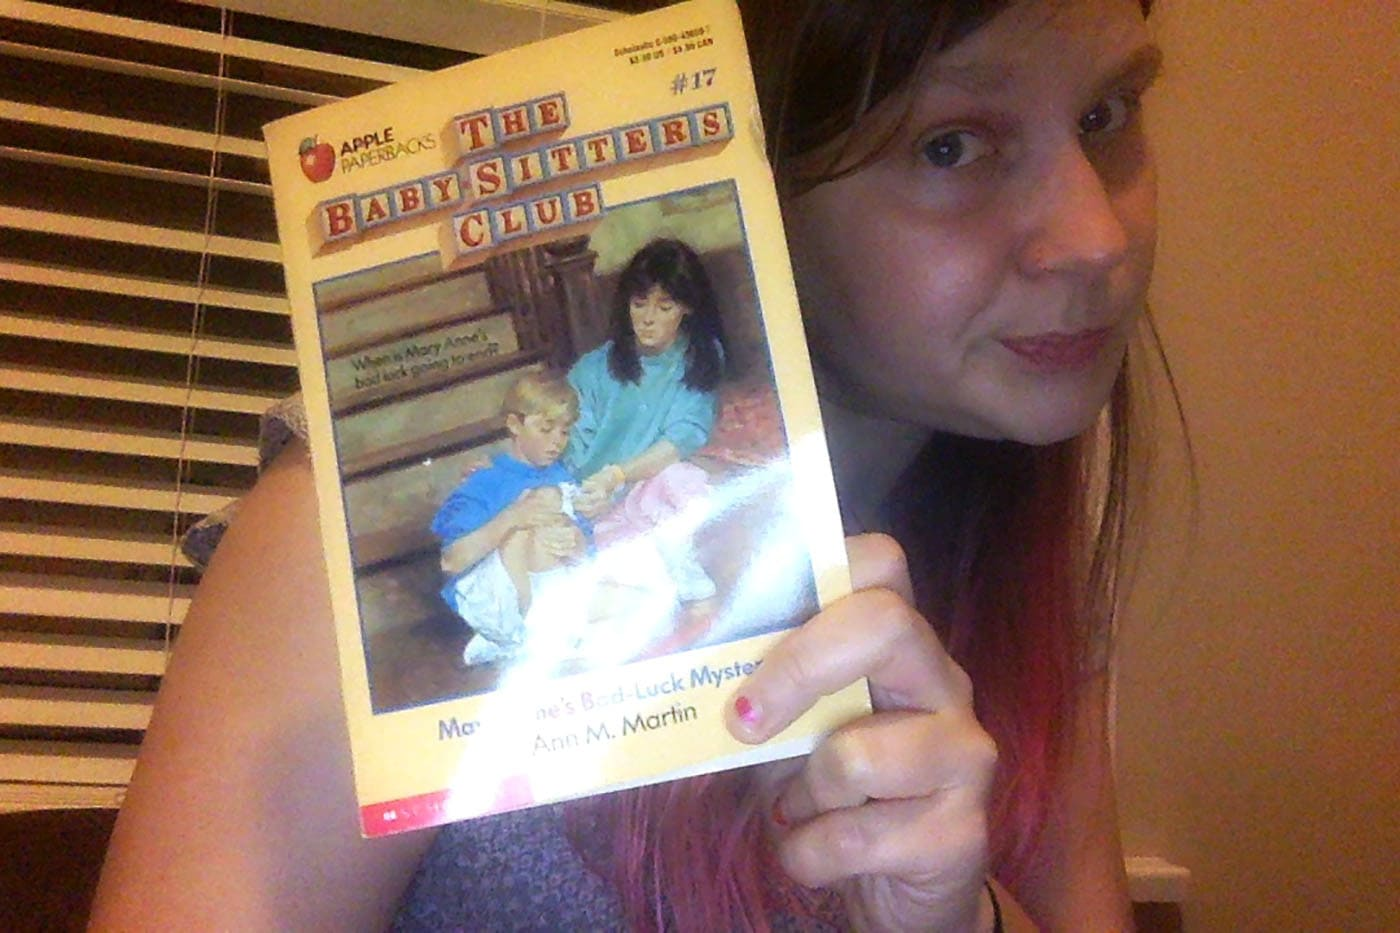 Baby-Sitters Club #17: Mary-Anne's Bad-Luck Mystery